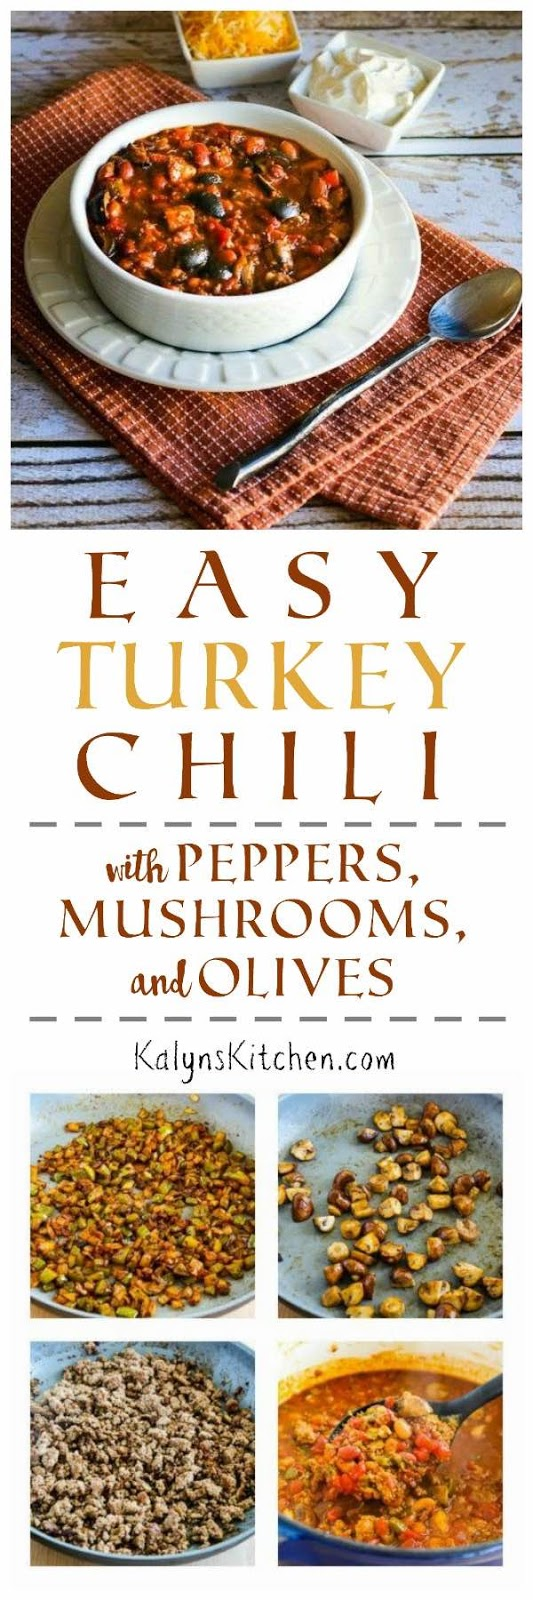 Easy Turkey Chili with Peppers, Mushrooms, and Olives - Kalyn\'s Kitchen